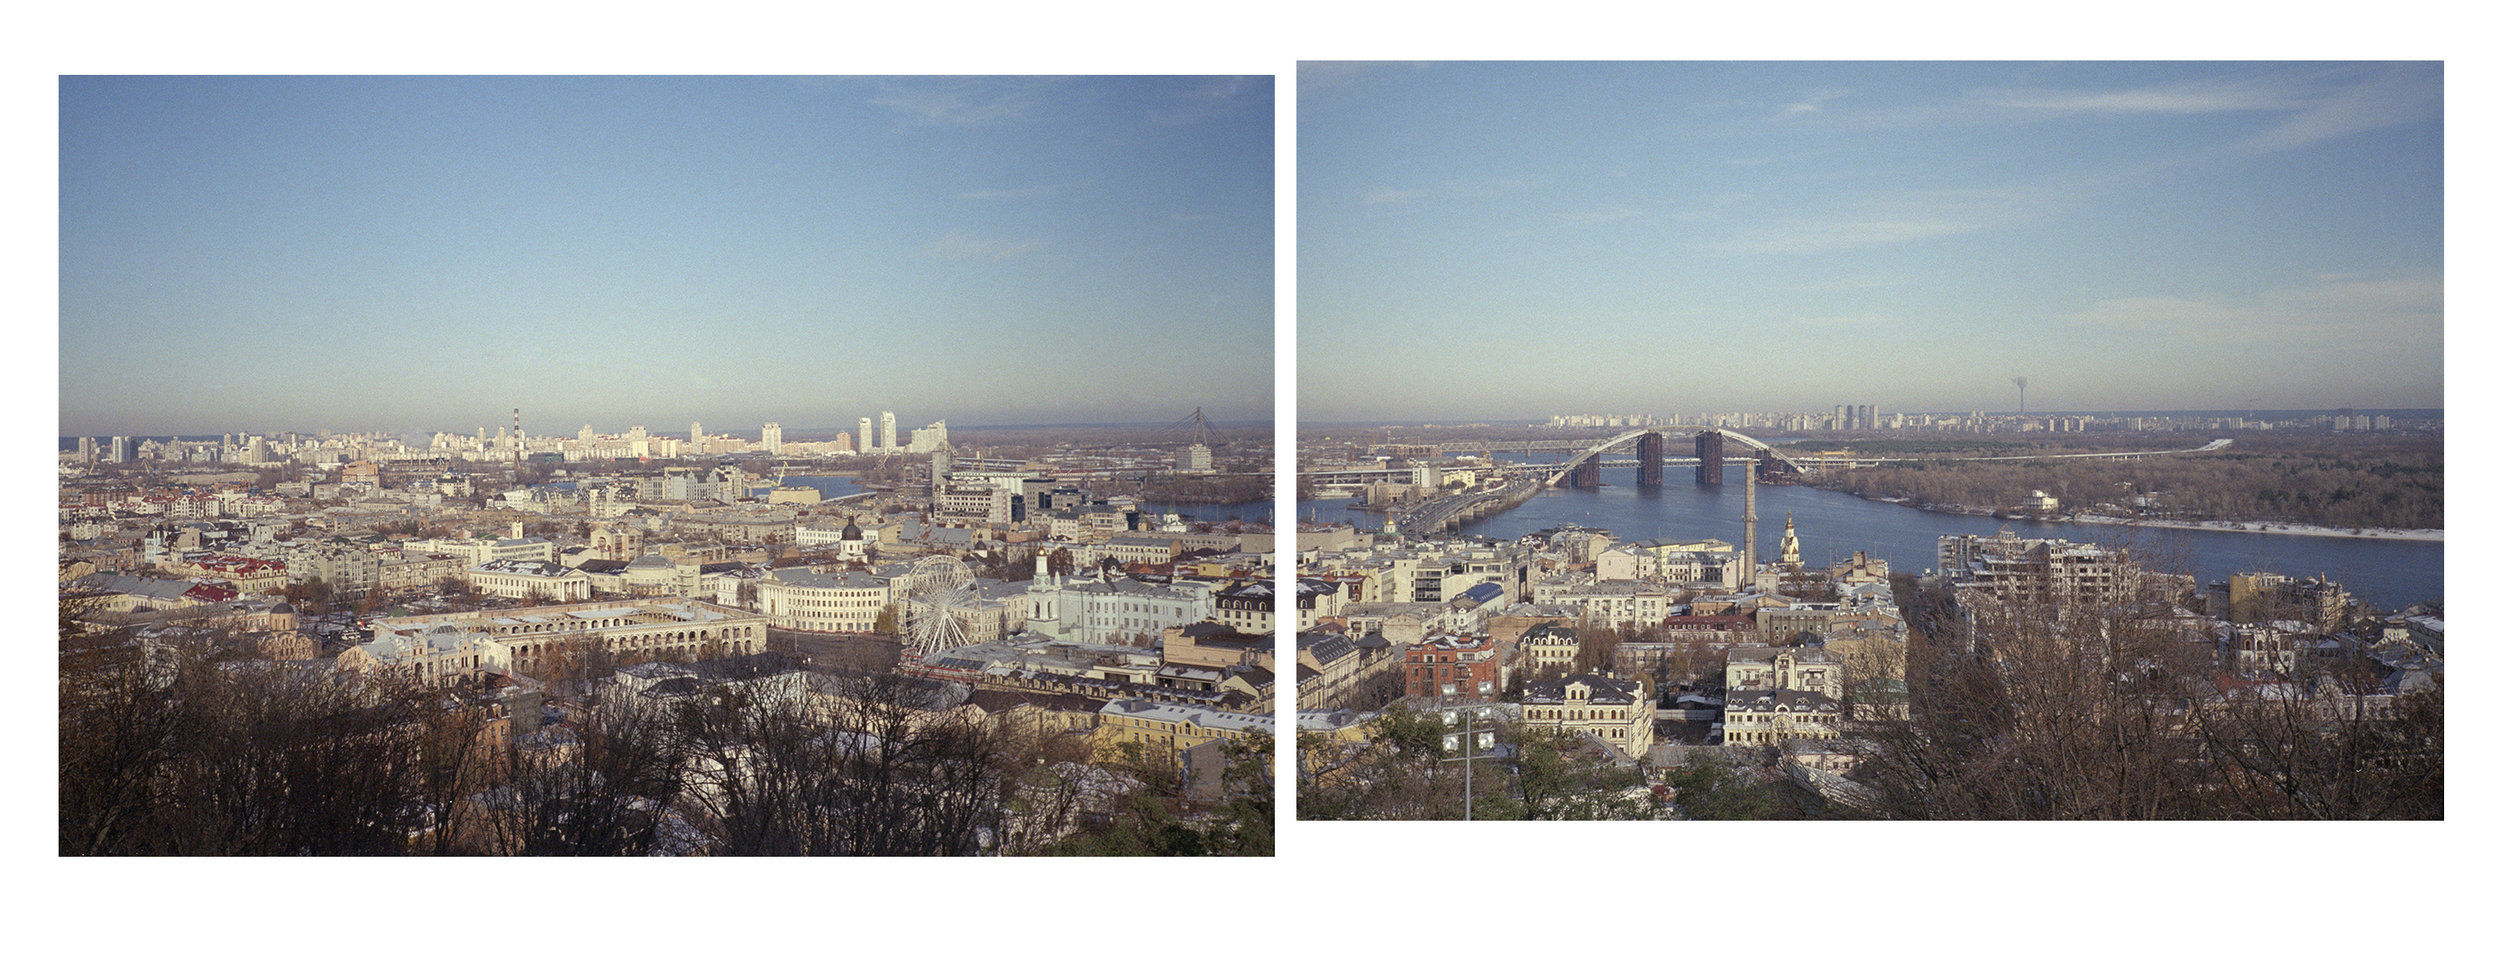 Podil and Dnieper River, from Saint Andrew's Church, Kyiv